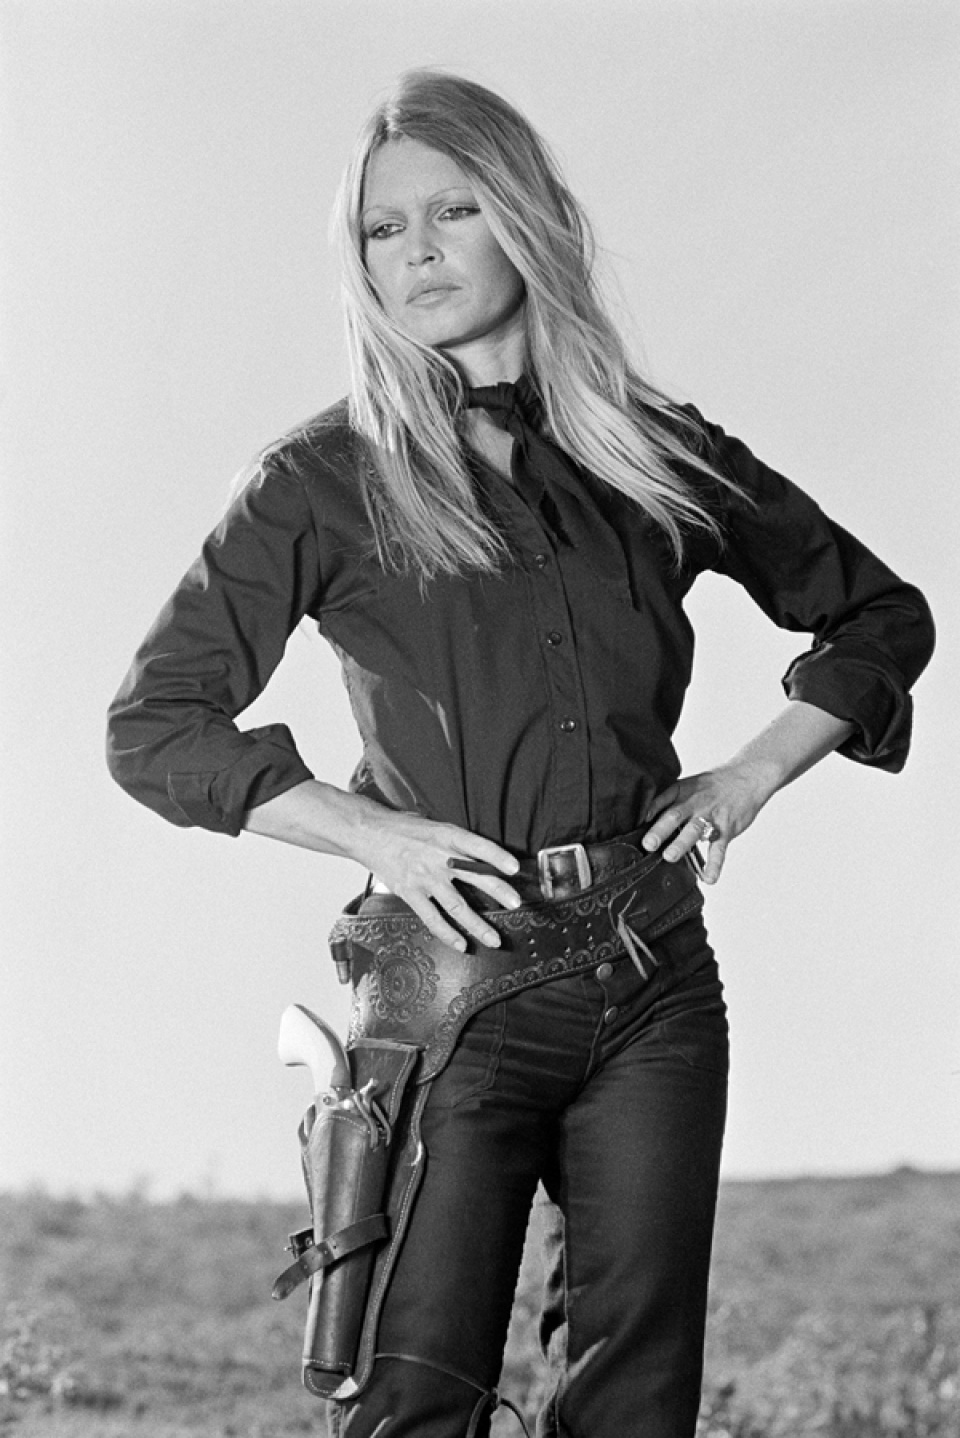 Terry O'Neill: Brigitte Bardot. Hands On Hips, Spain, 1971